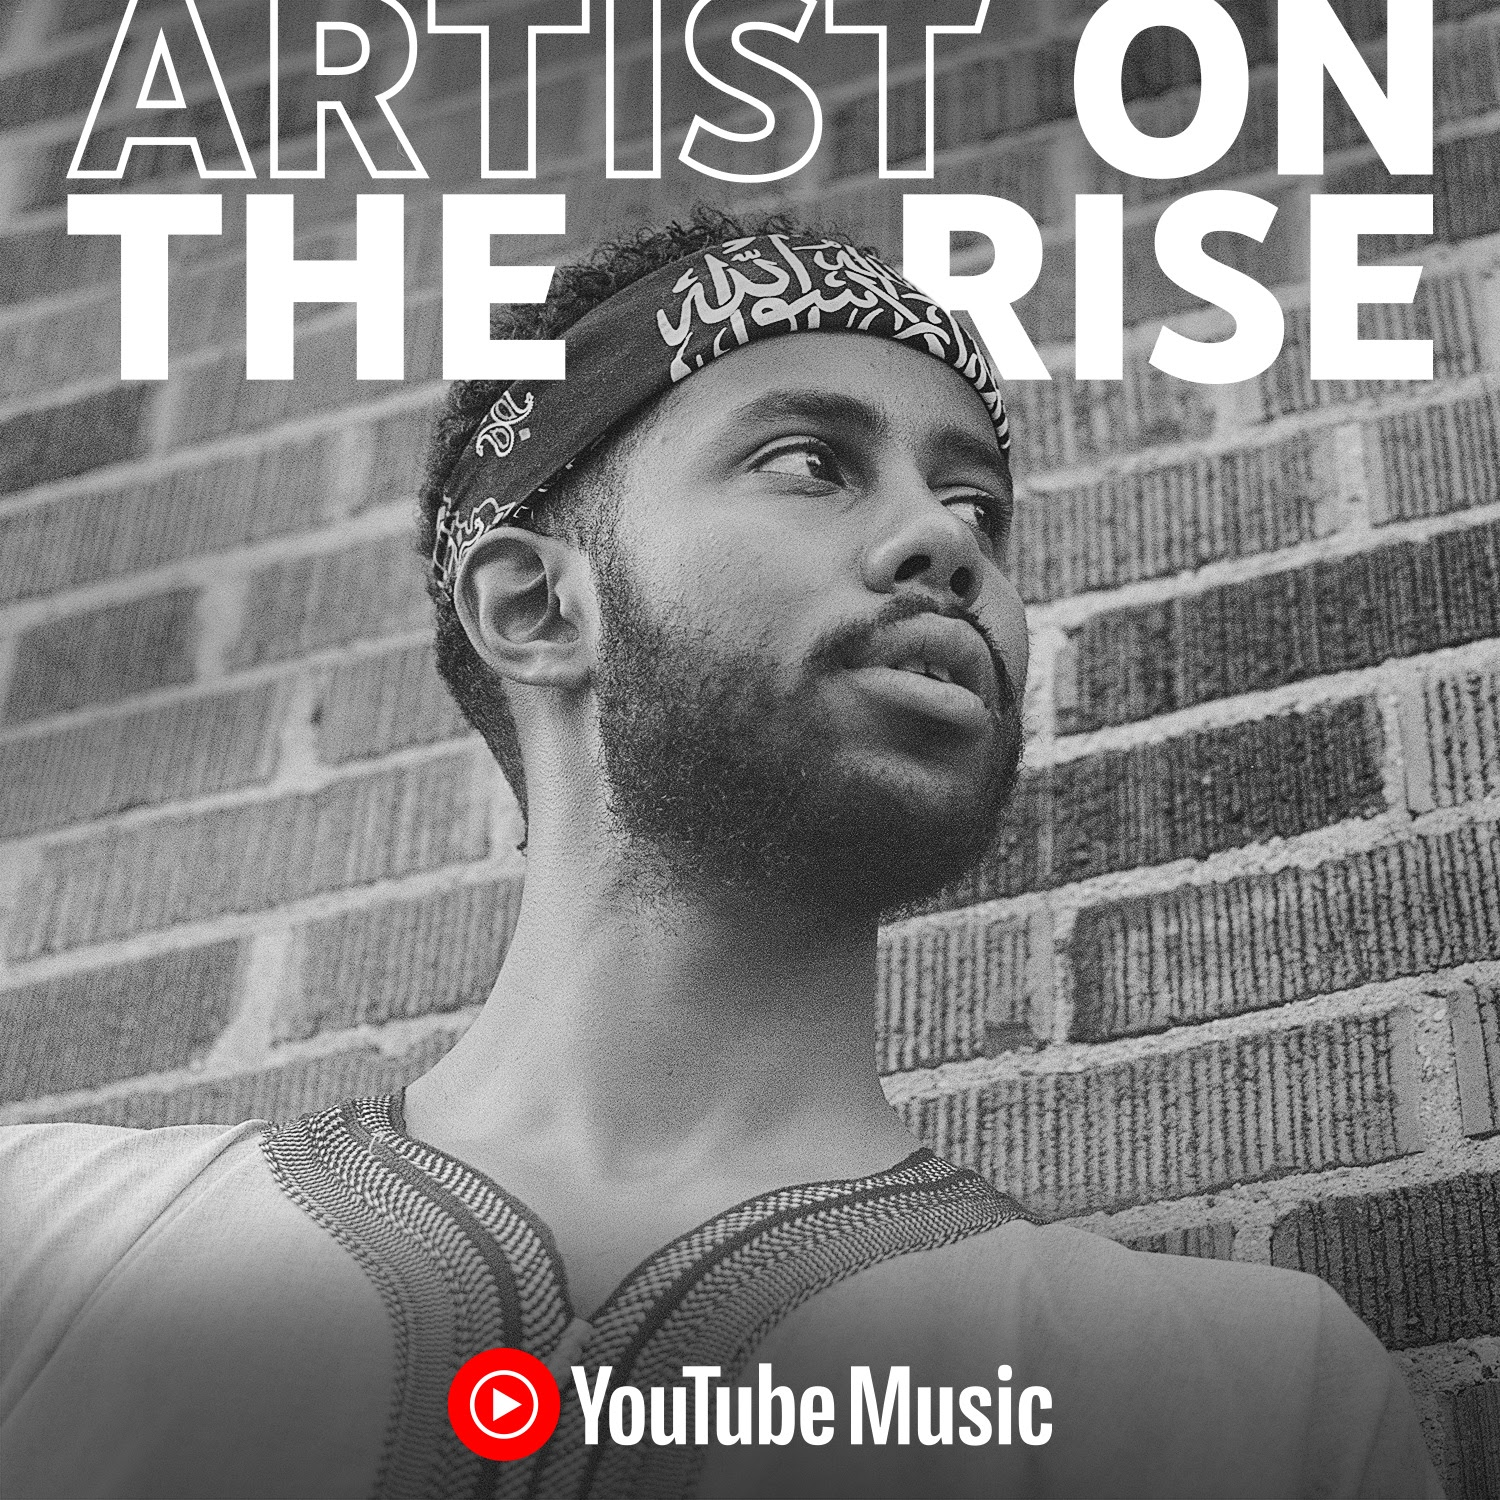 Get to know Mustafa, our latest Artist on the Rise